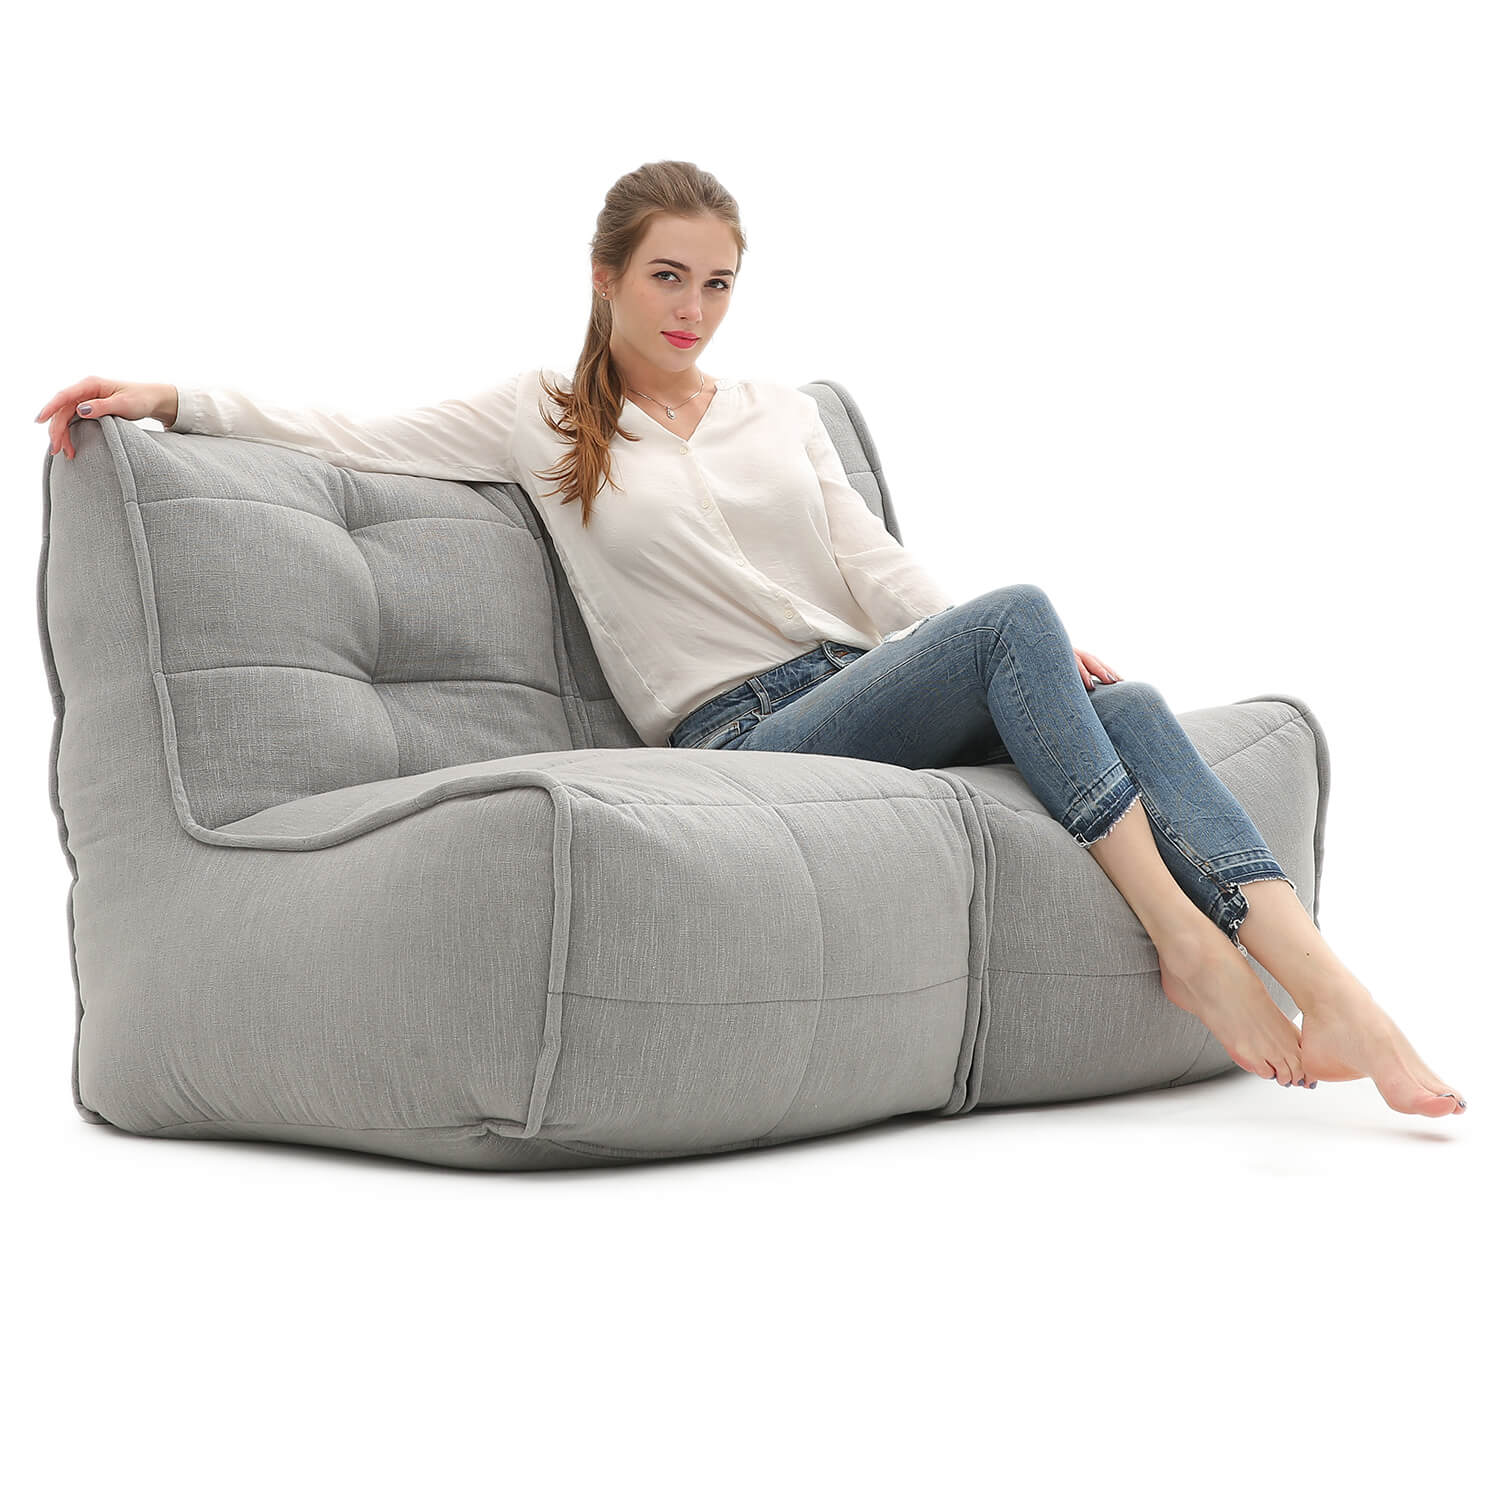 Twin Couch Sofa Keystone Grey Bean Bags Australia